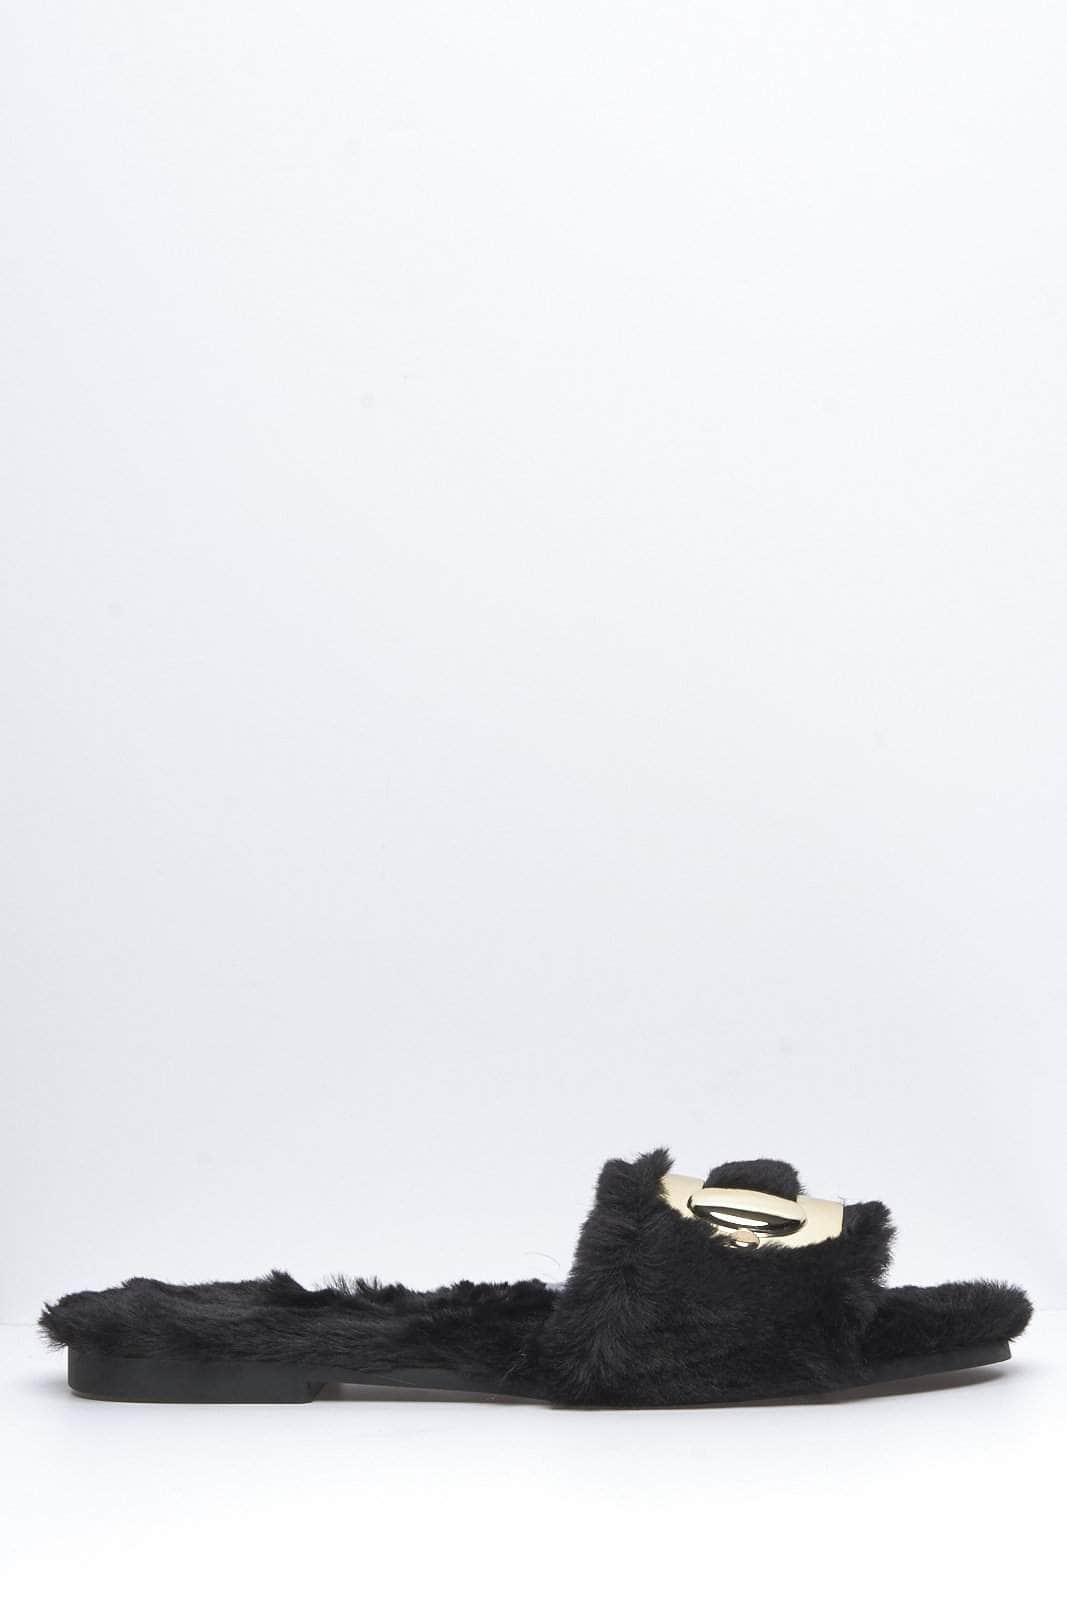 Black Faux Fur Sliders with Gold Buckle